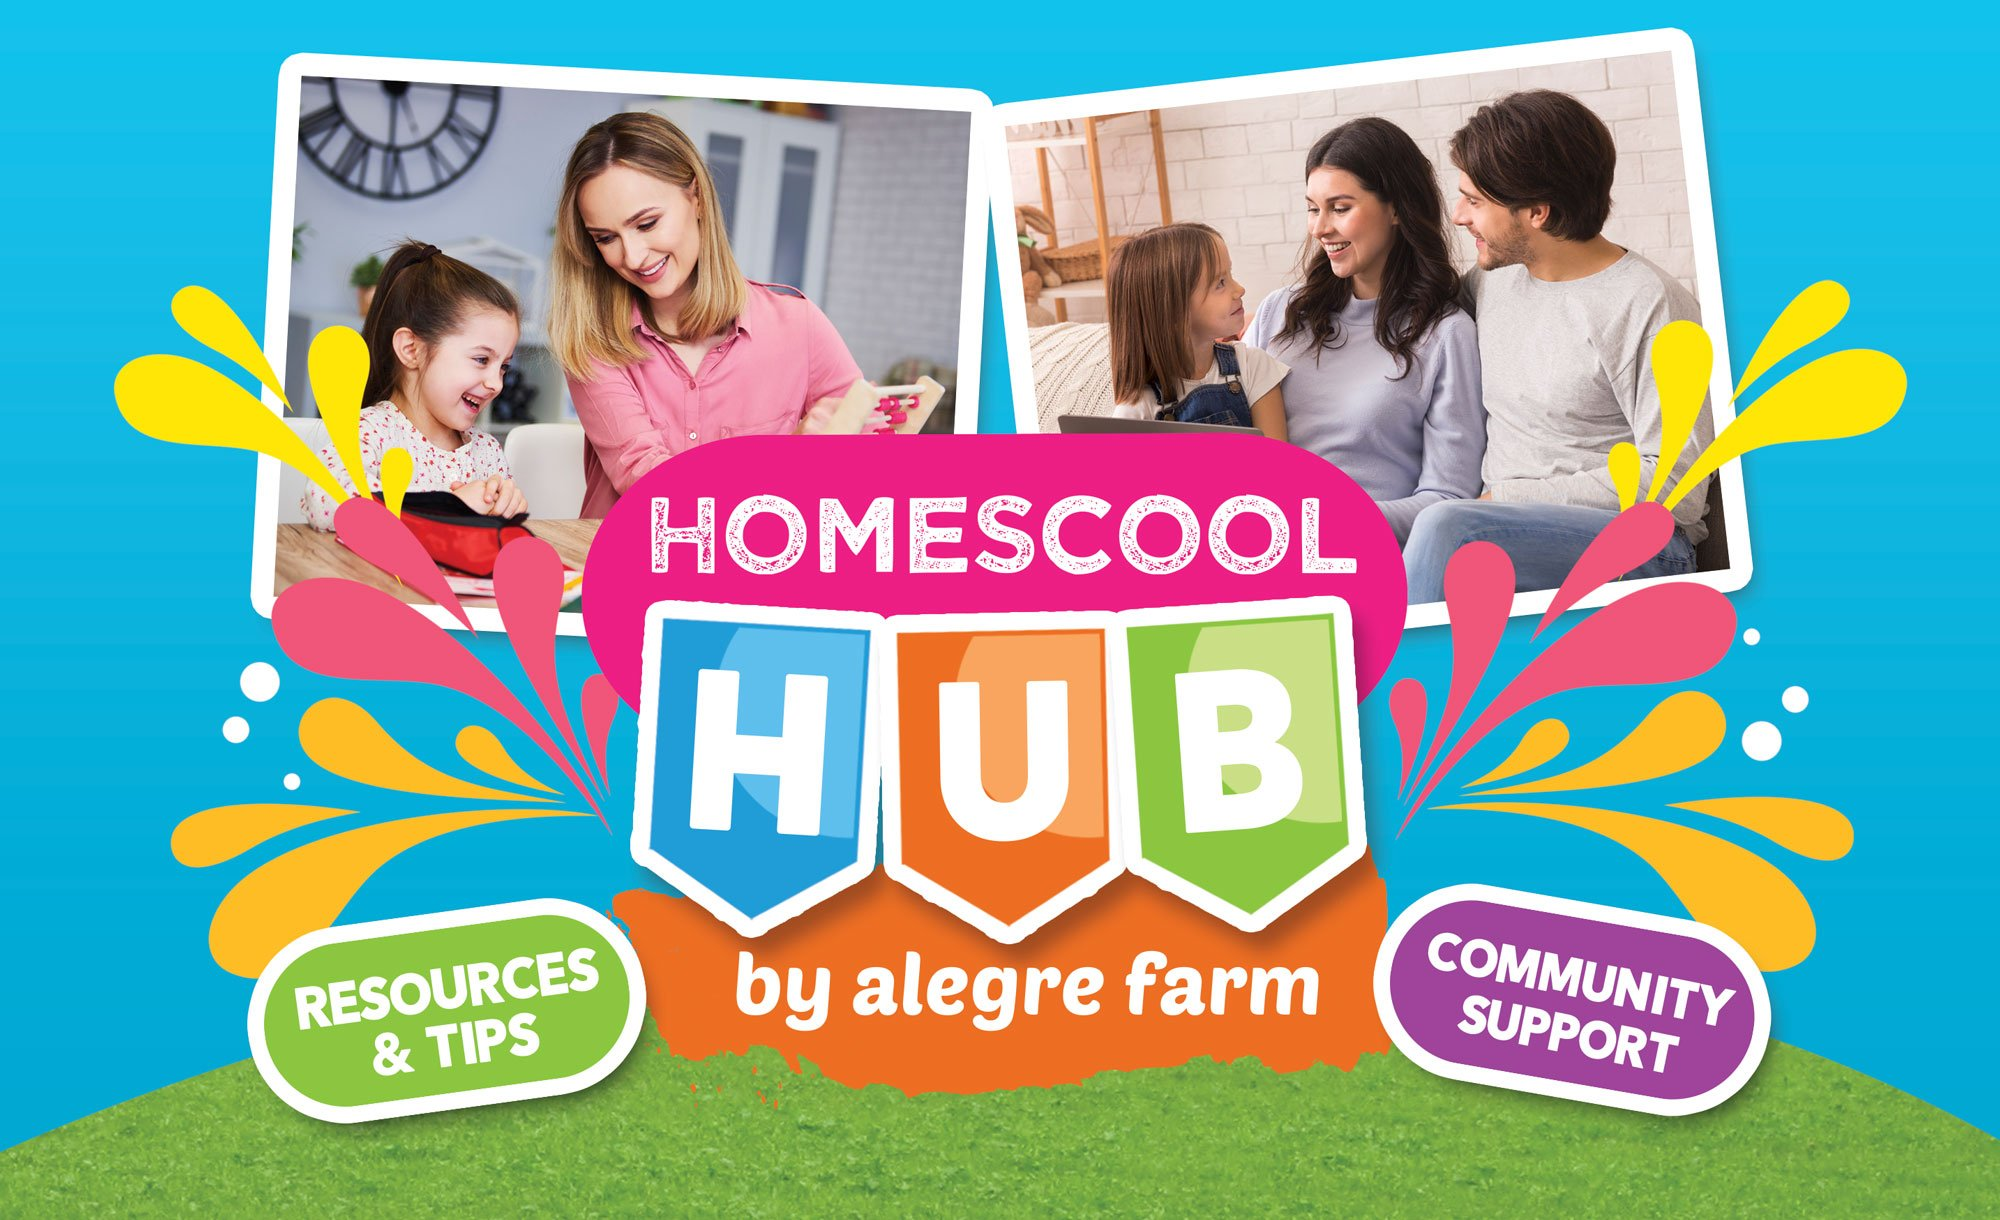 The HomeSchool Hub